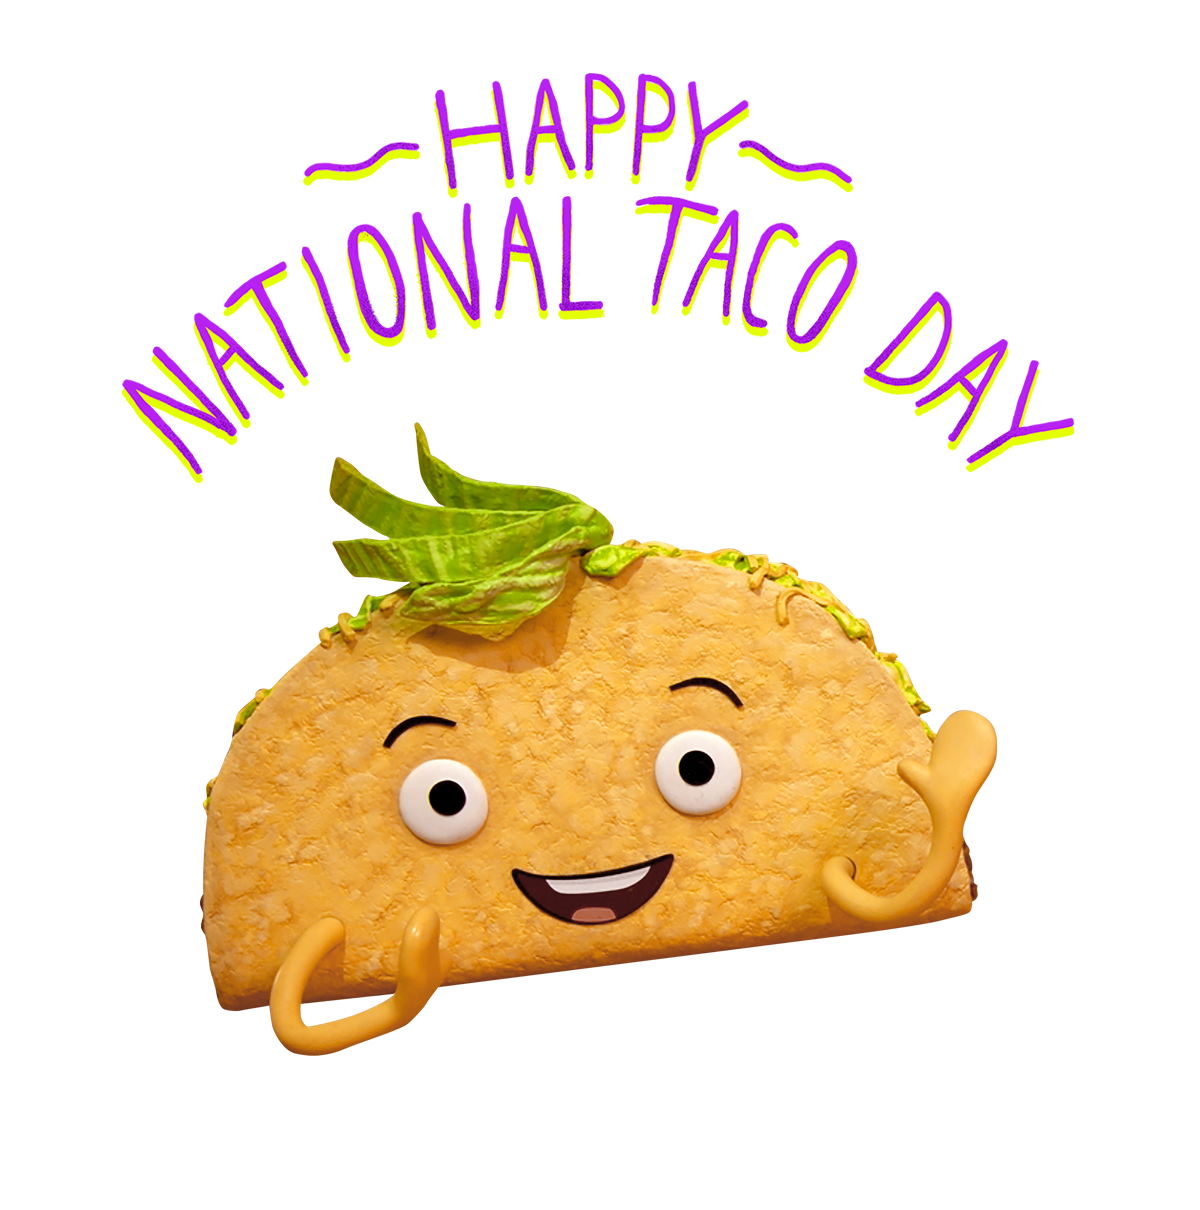 Tacos clipart crunchy. Taco bell it s